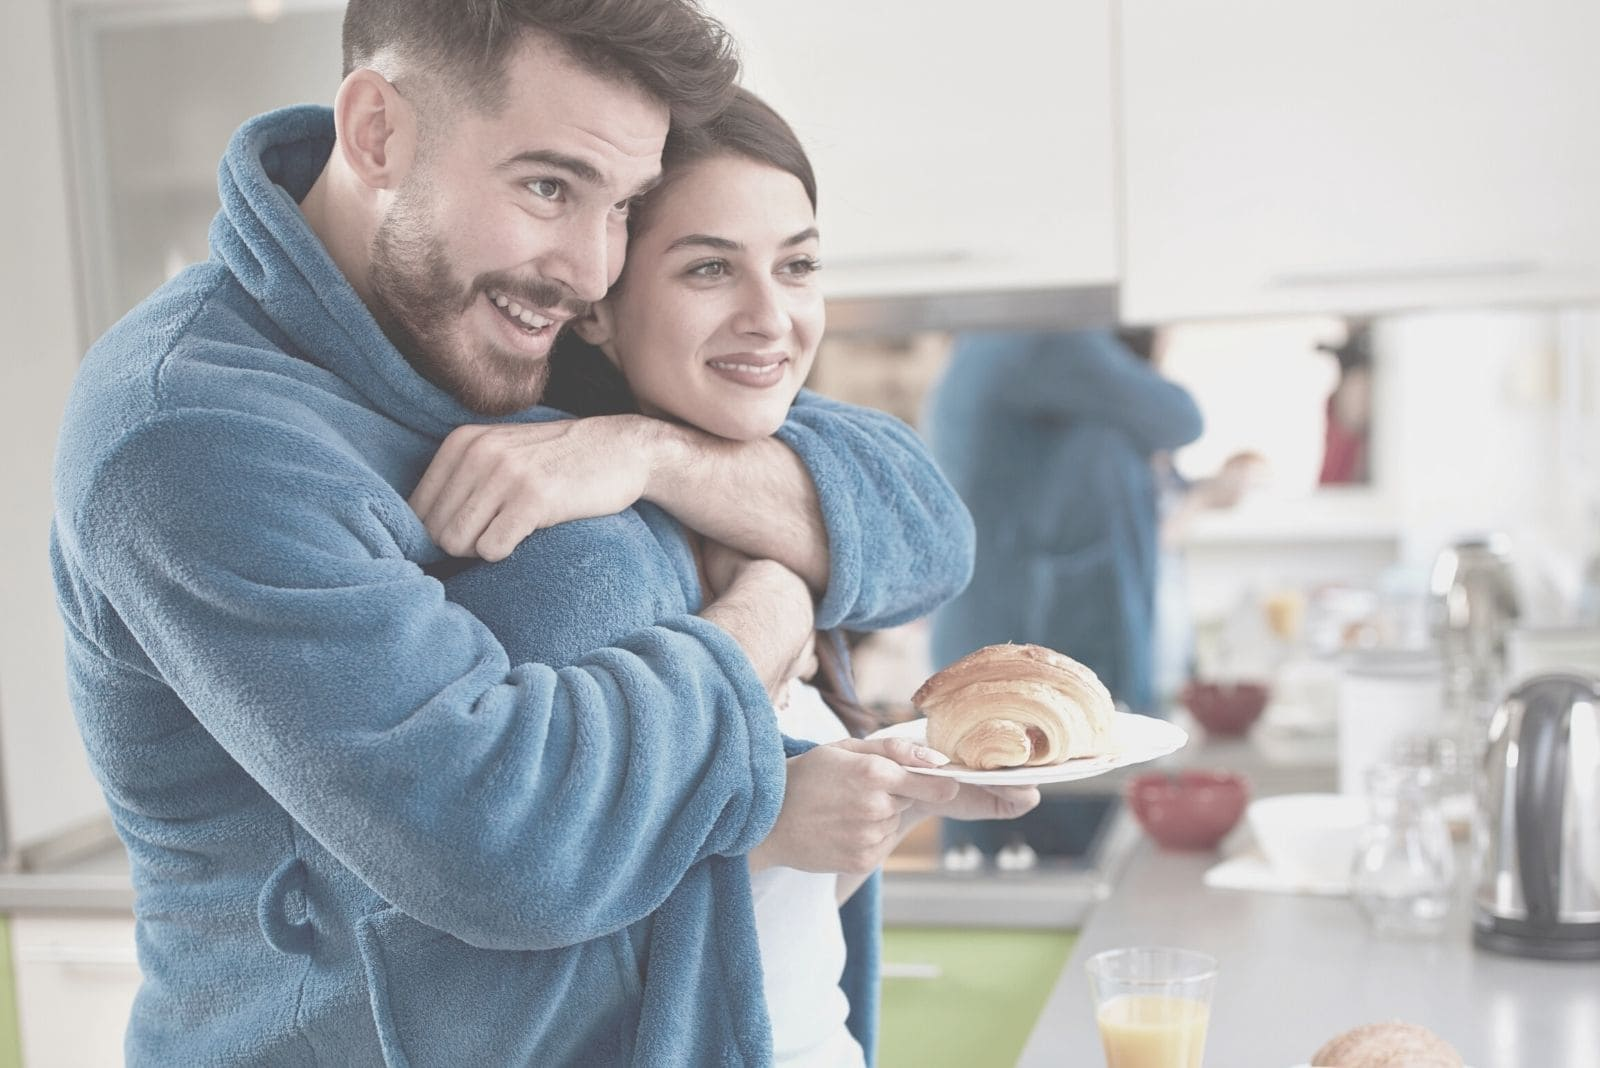 young man hugging wife in the kitchen bring baked bread